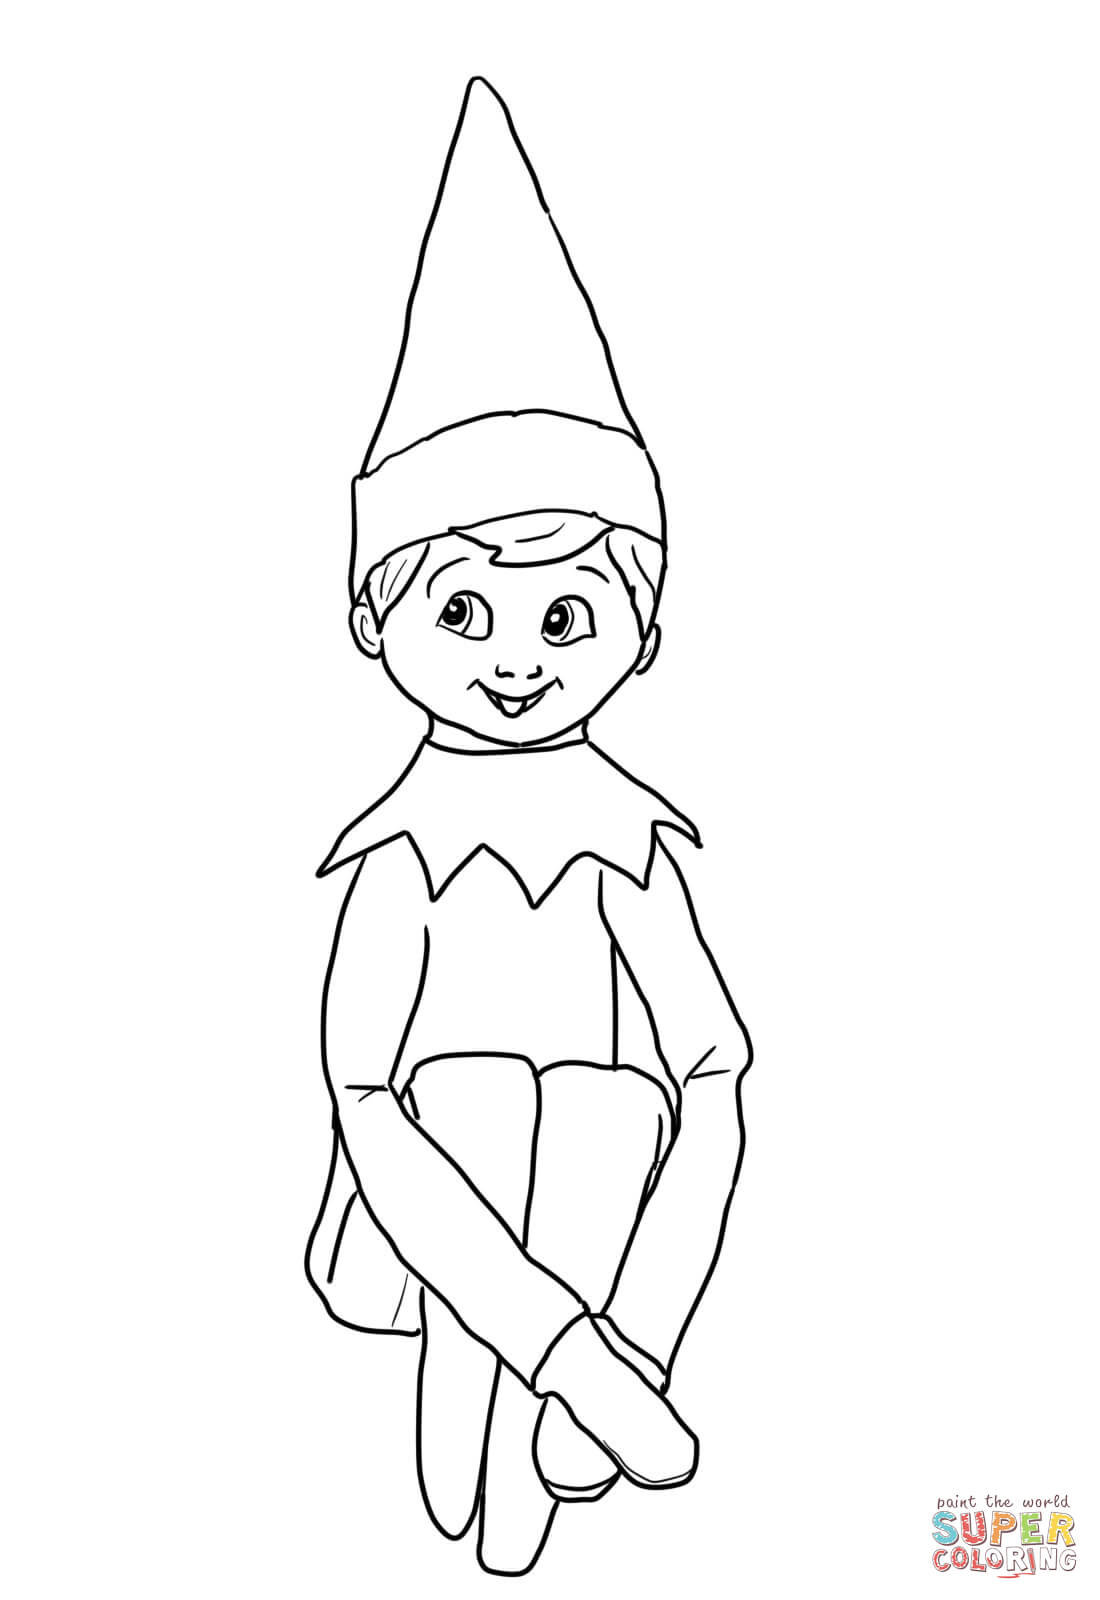 Christmas Coloring Pages Elf On The Shelf And Reindeer